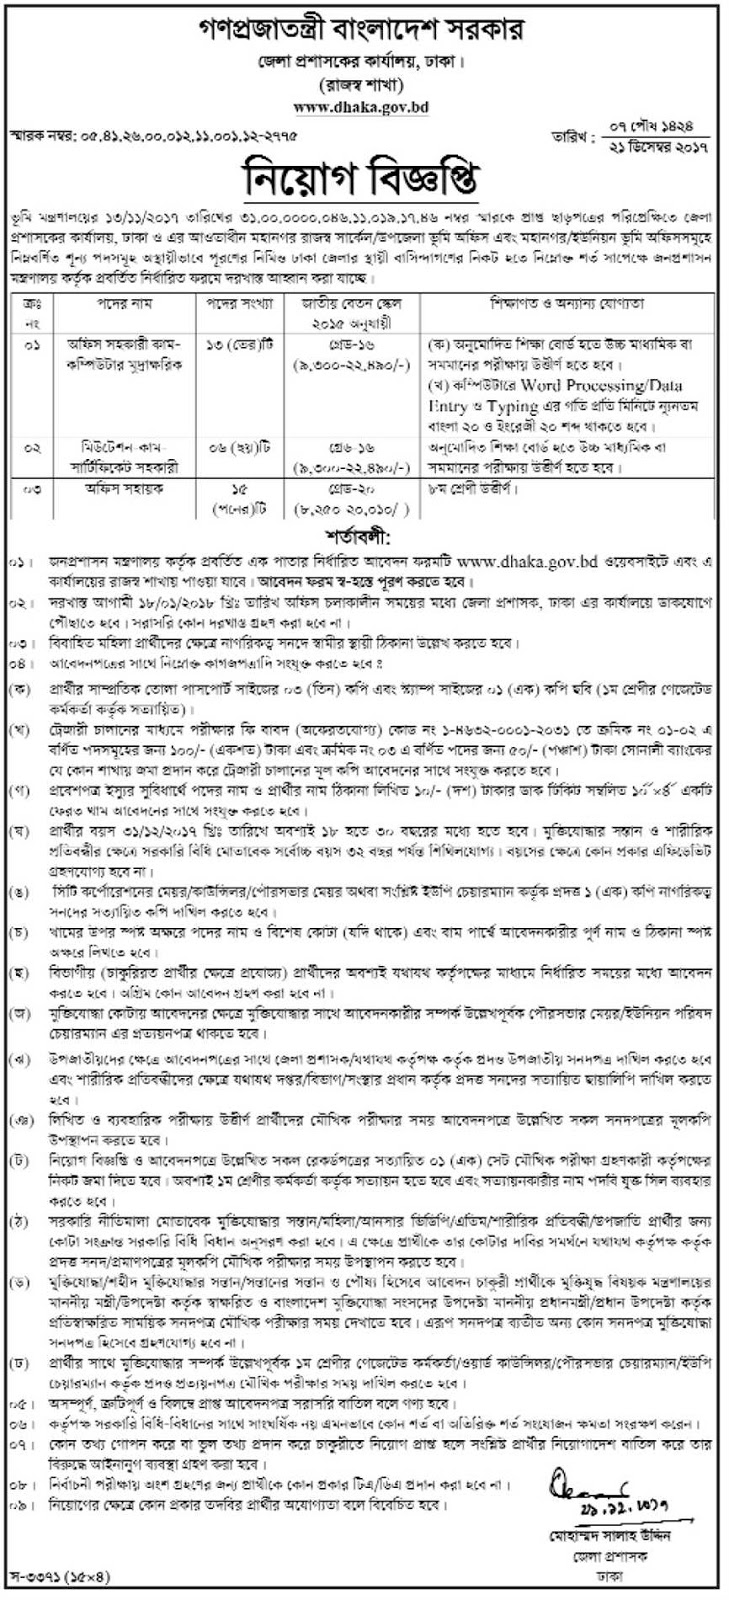 Deputy Commissioner's Office, Dhaka Job Circular 2017